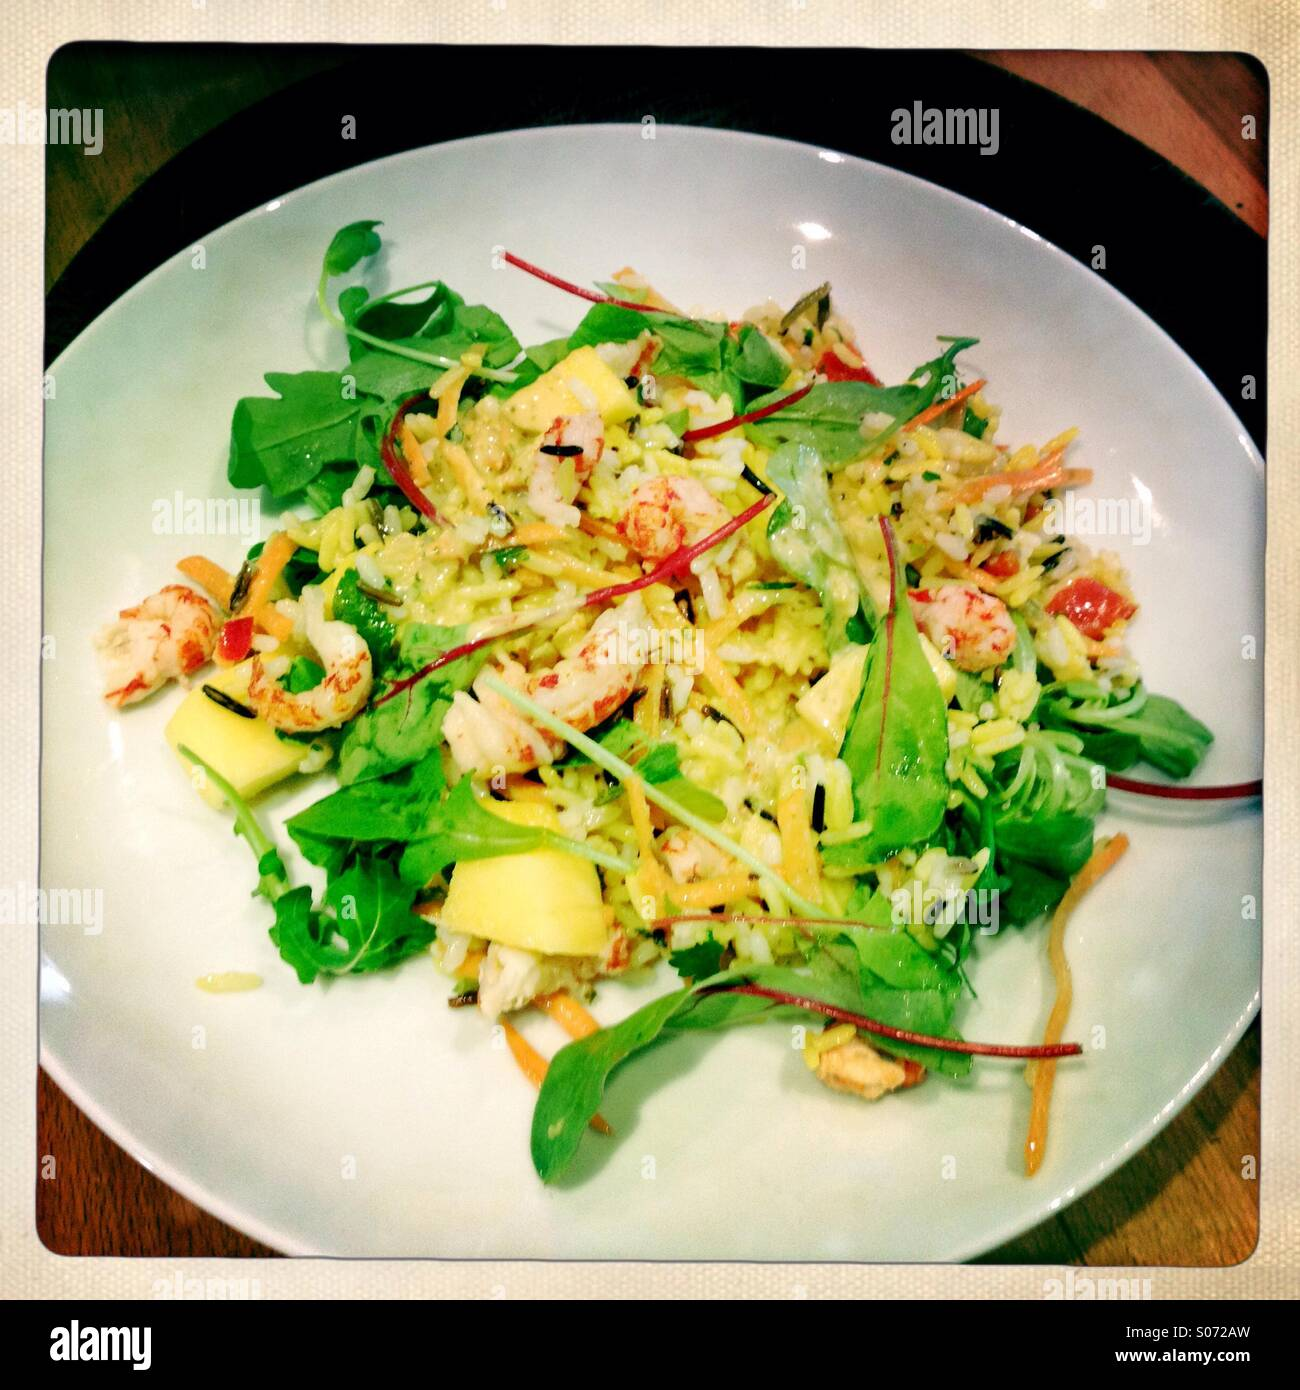 Crayfish Salad High Resolution Stock Photography And Images Alamy